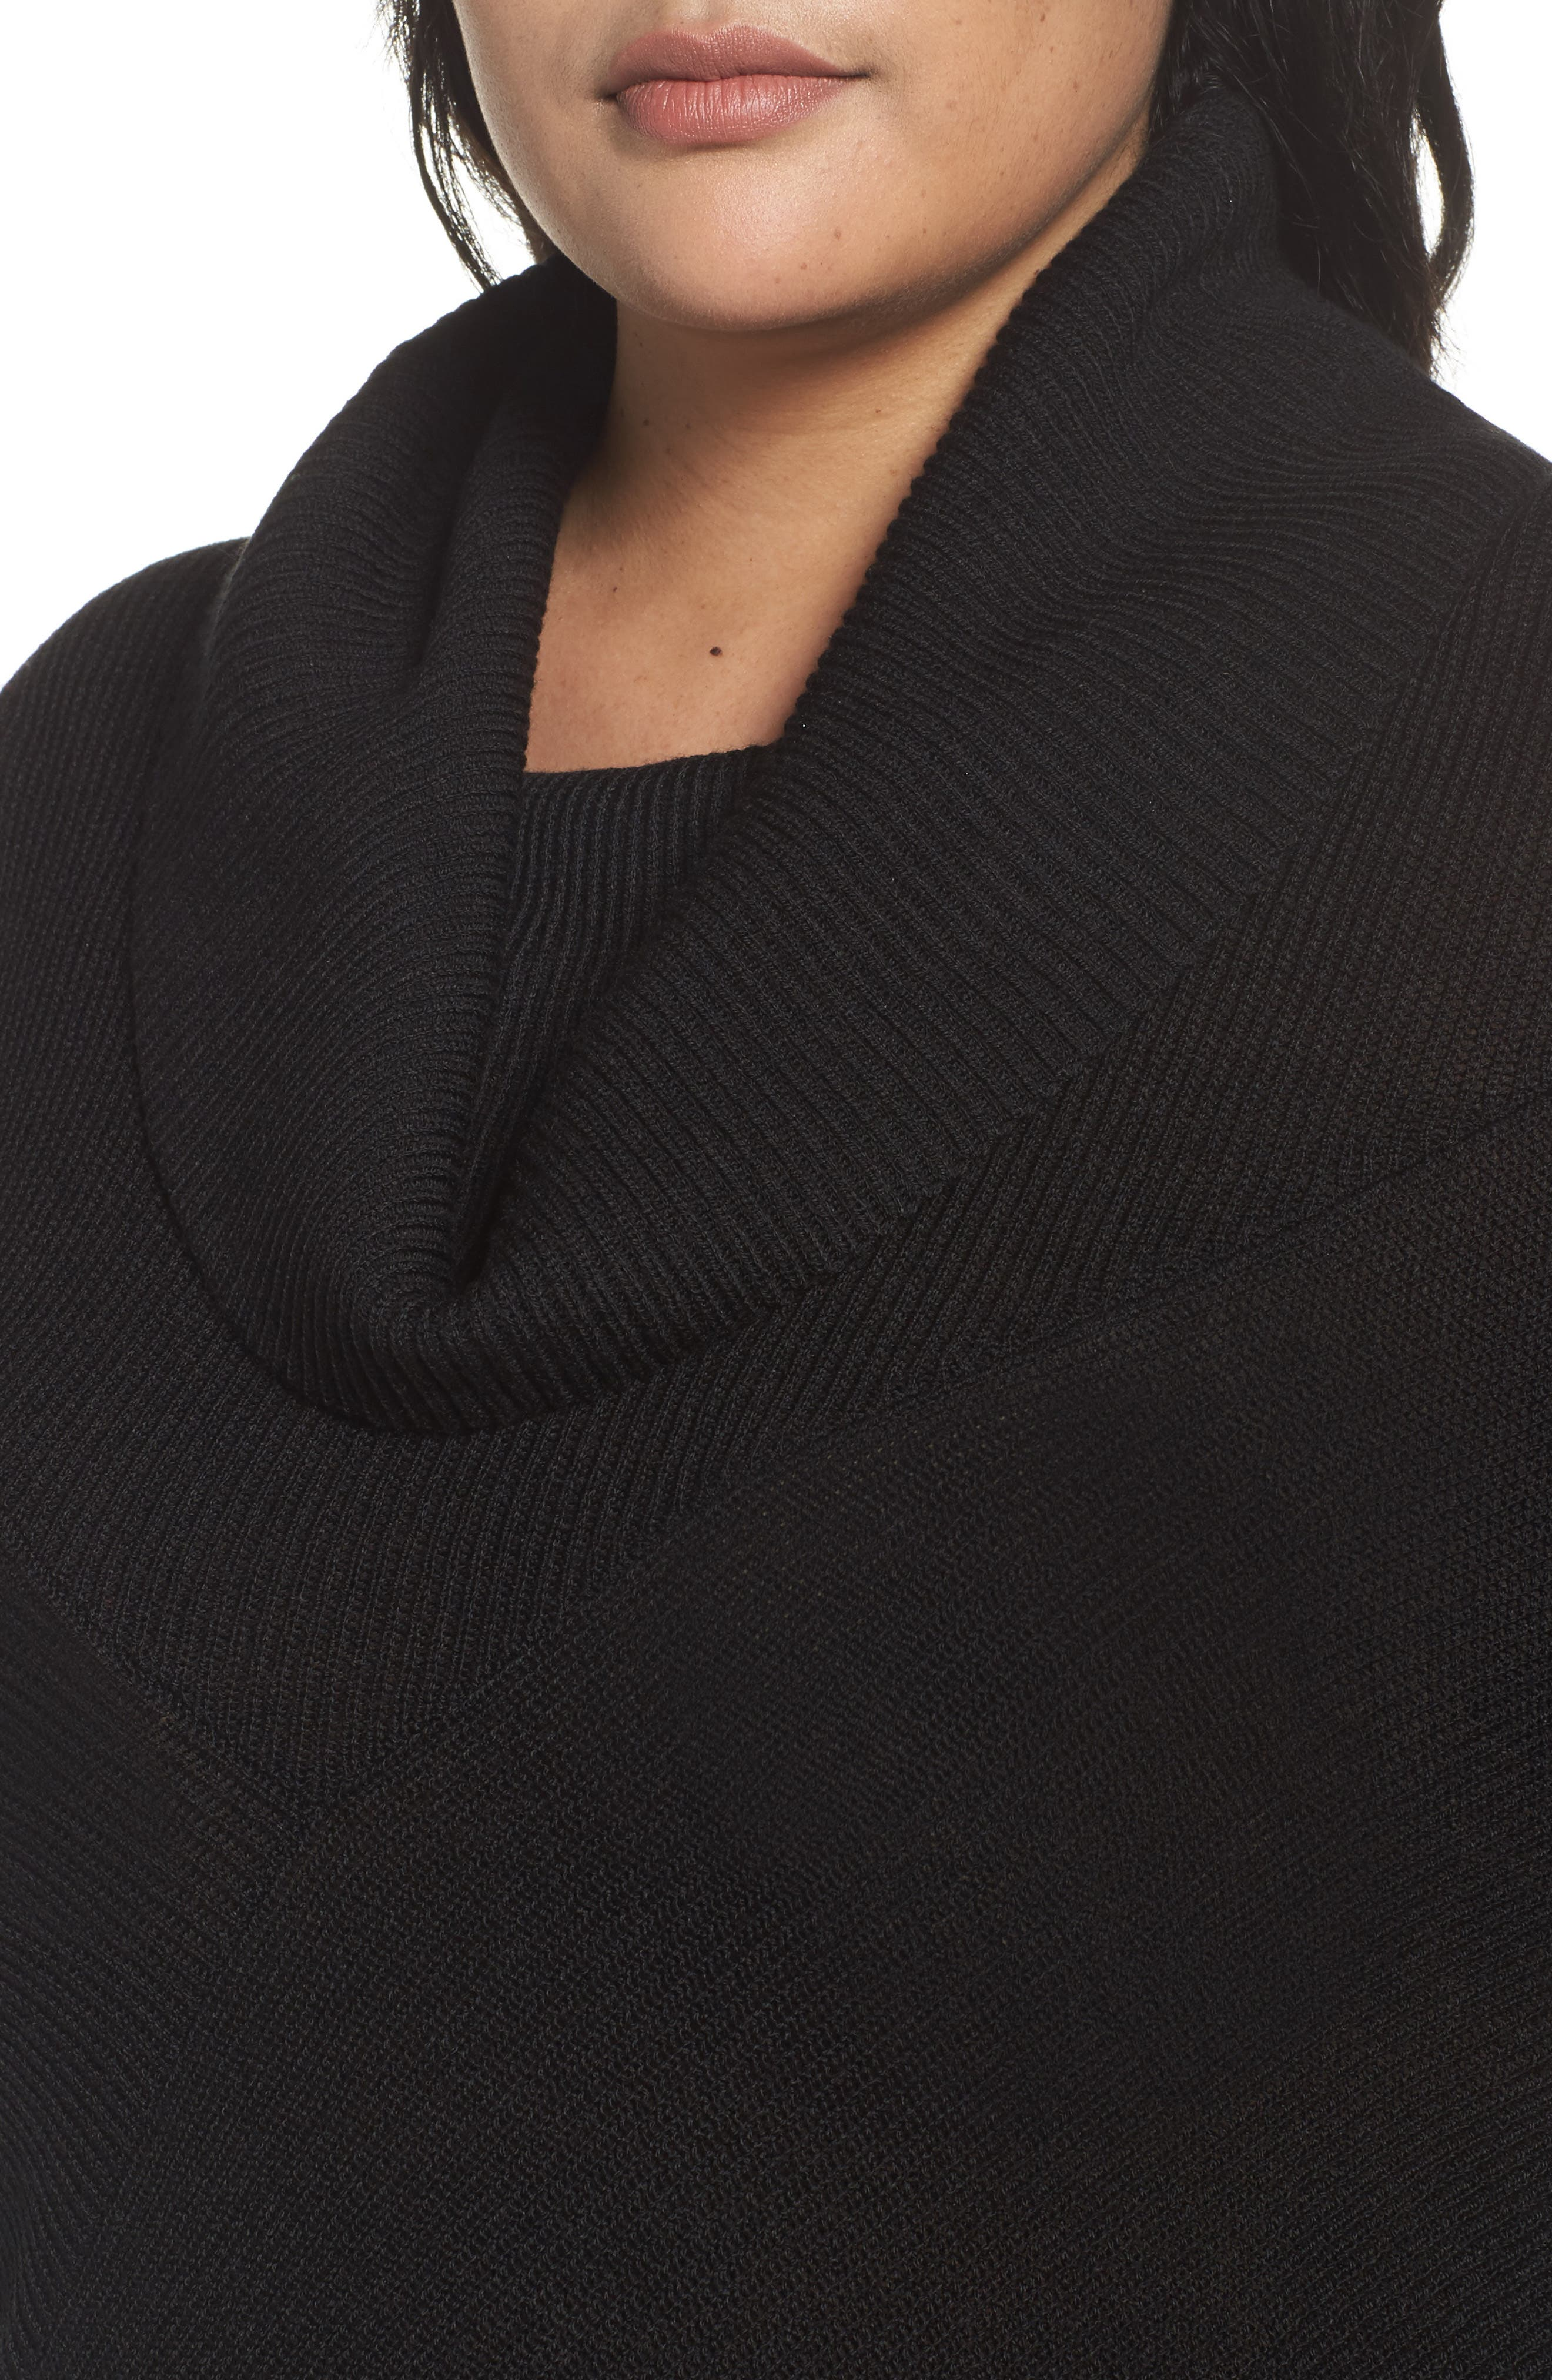 Cowl Neck Ribbed Trim Pullover,                             Alternate thumbnail 19, color,